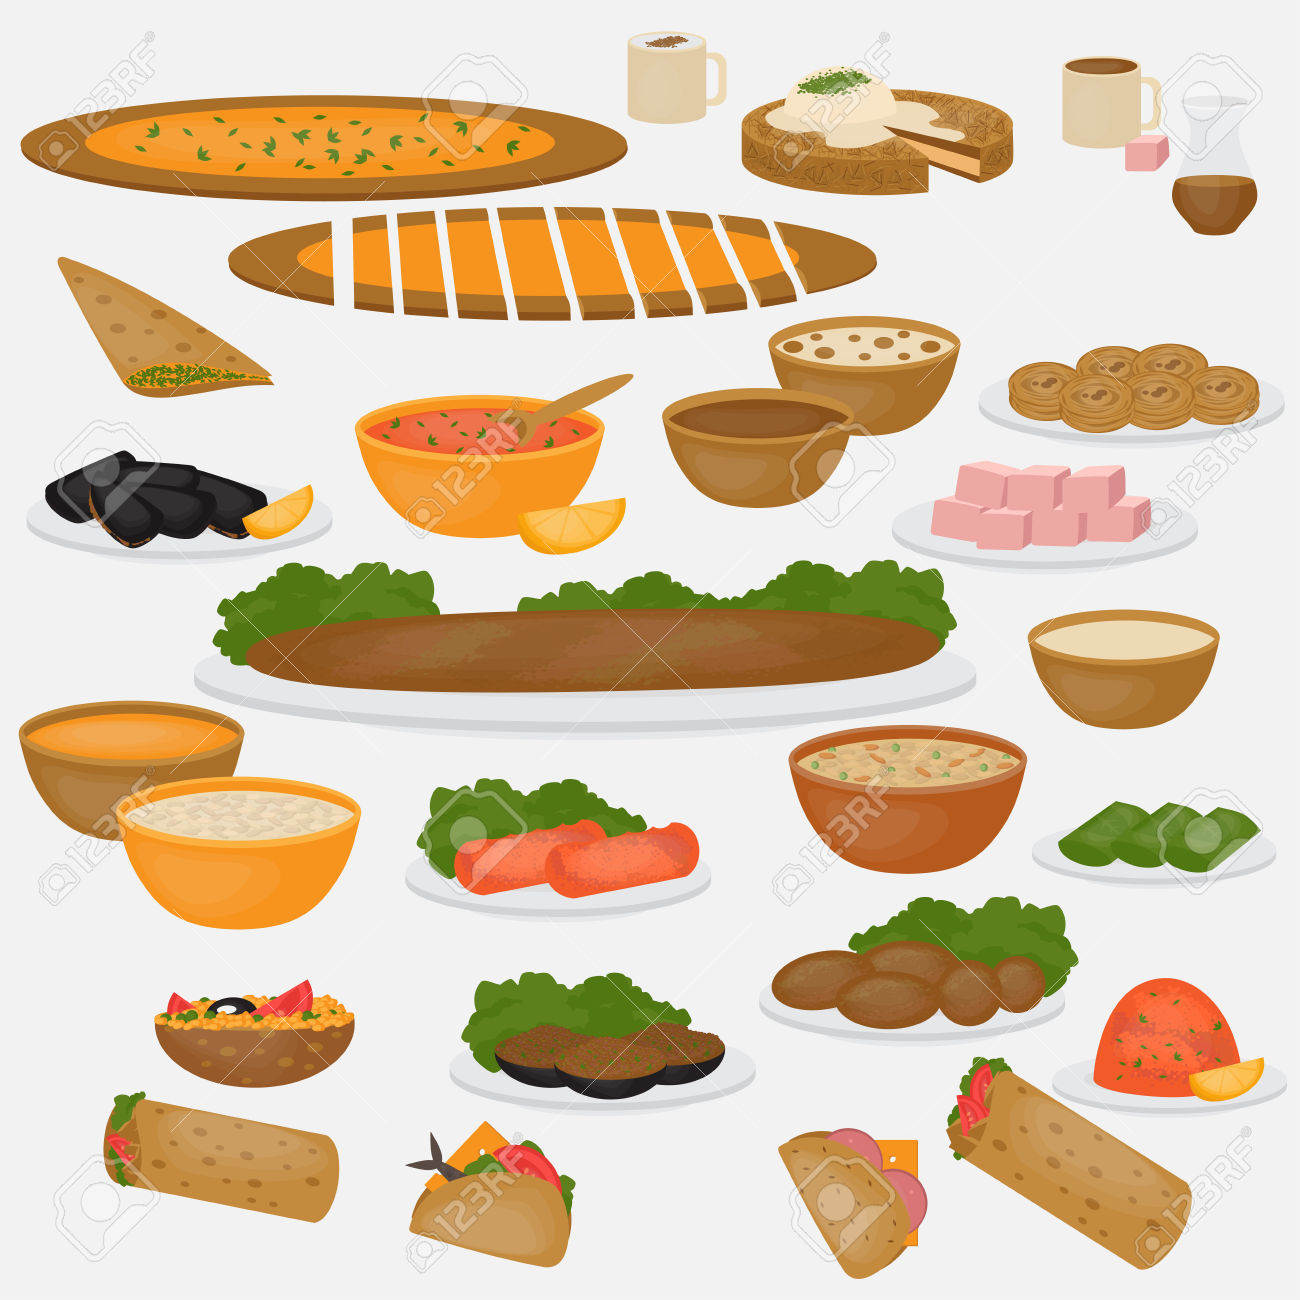 Traditional food clipart graphic royalty free download 638 Ramadan Food Stock Vector Illustration And Royalty Free ... graphic royalty free download